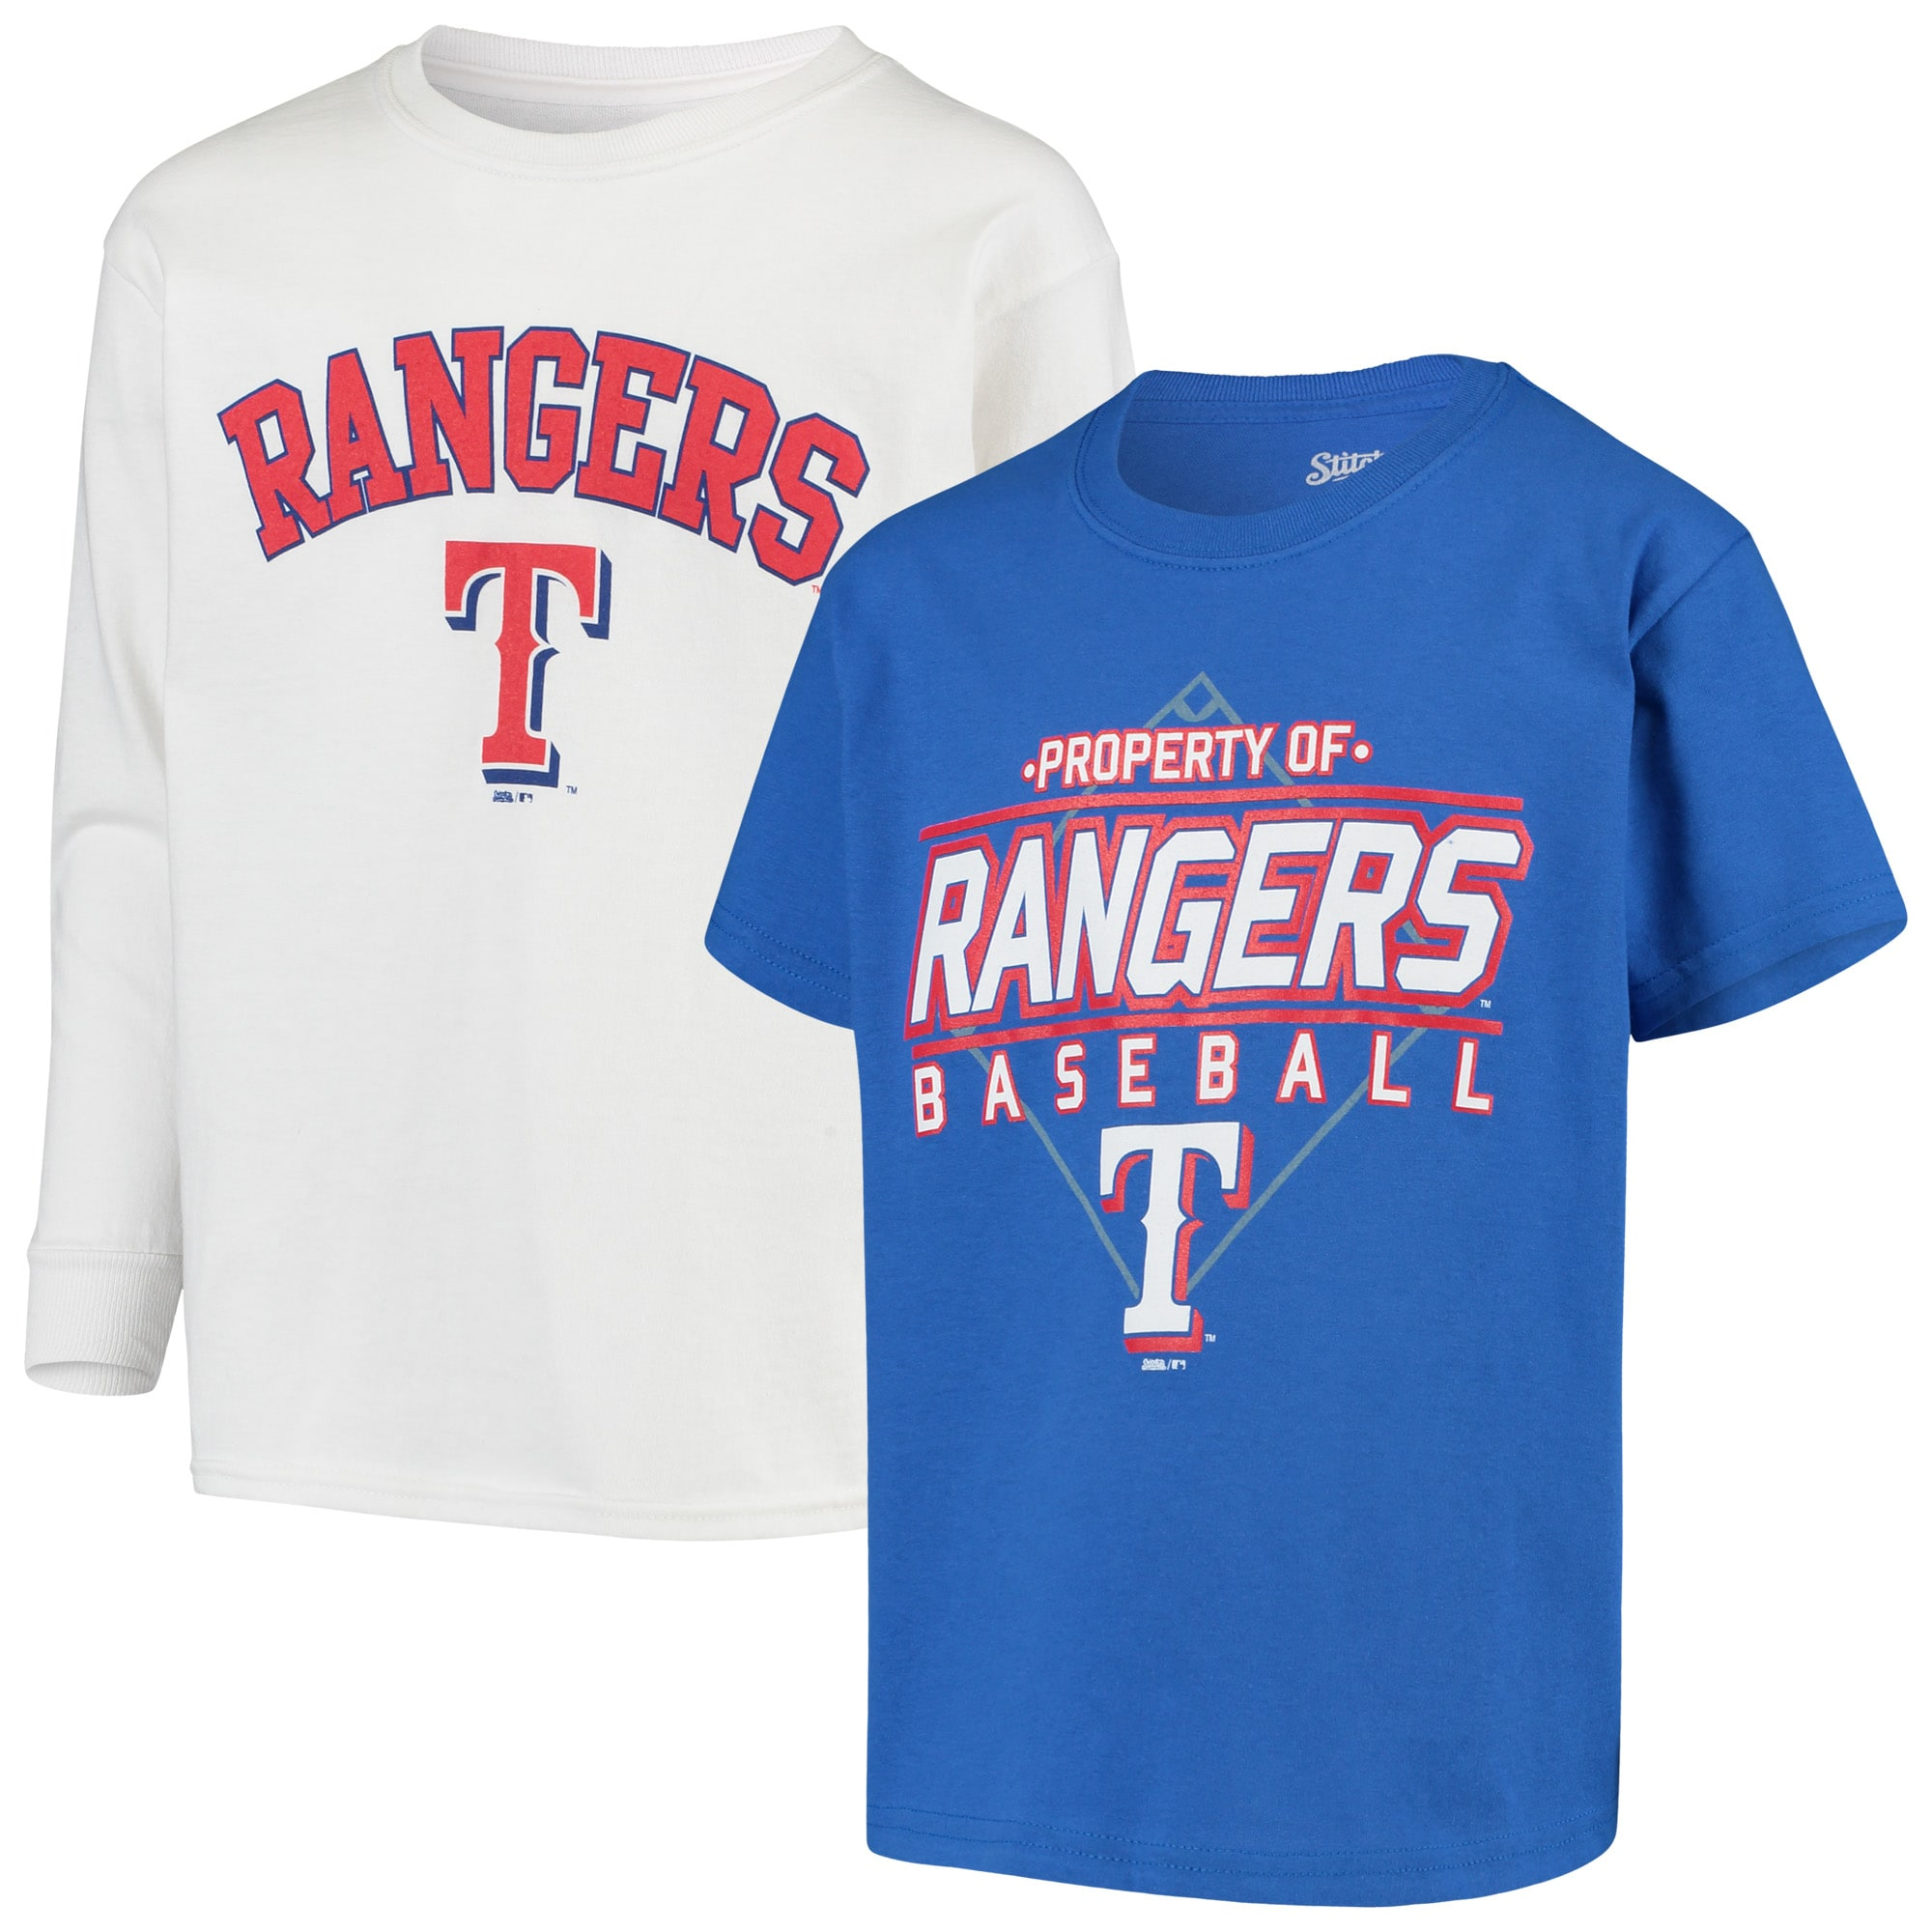 Texas Rangers Stitches Youth T-Shirt Combo Set - Royal/White